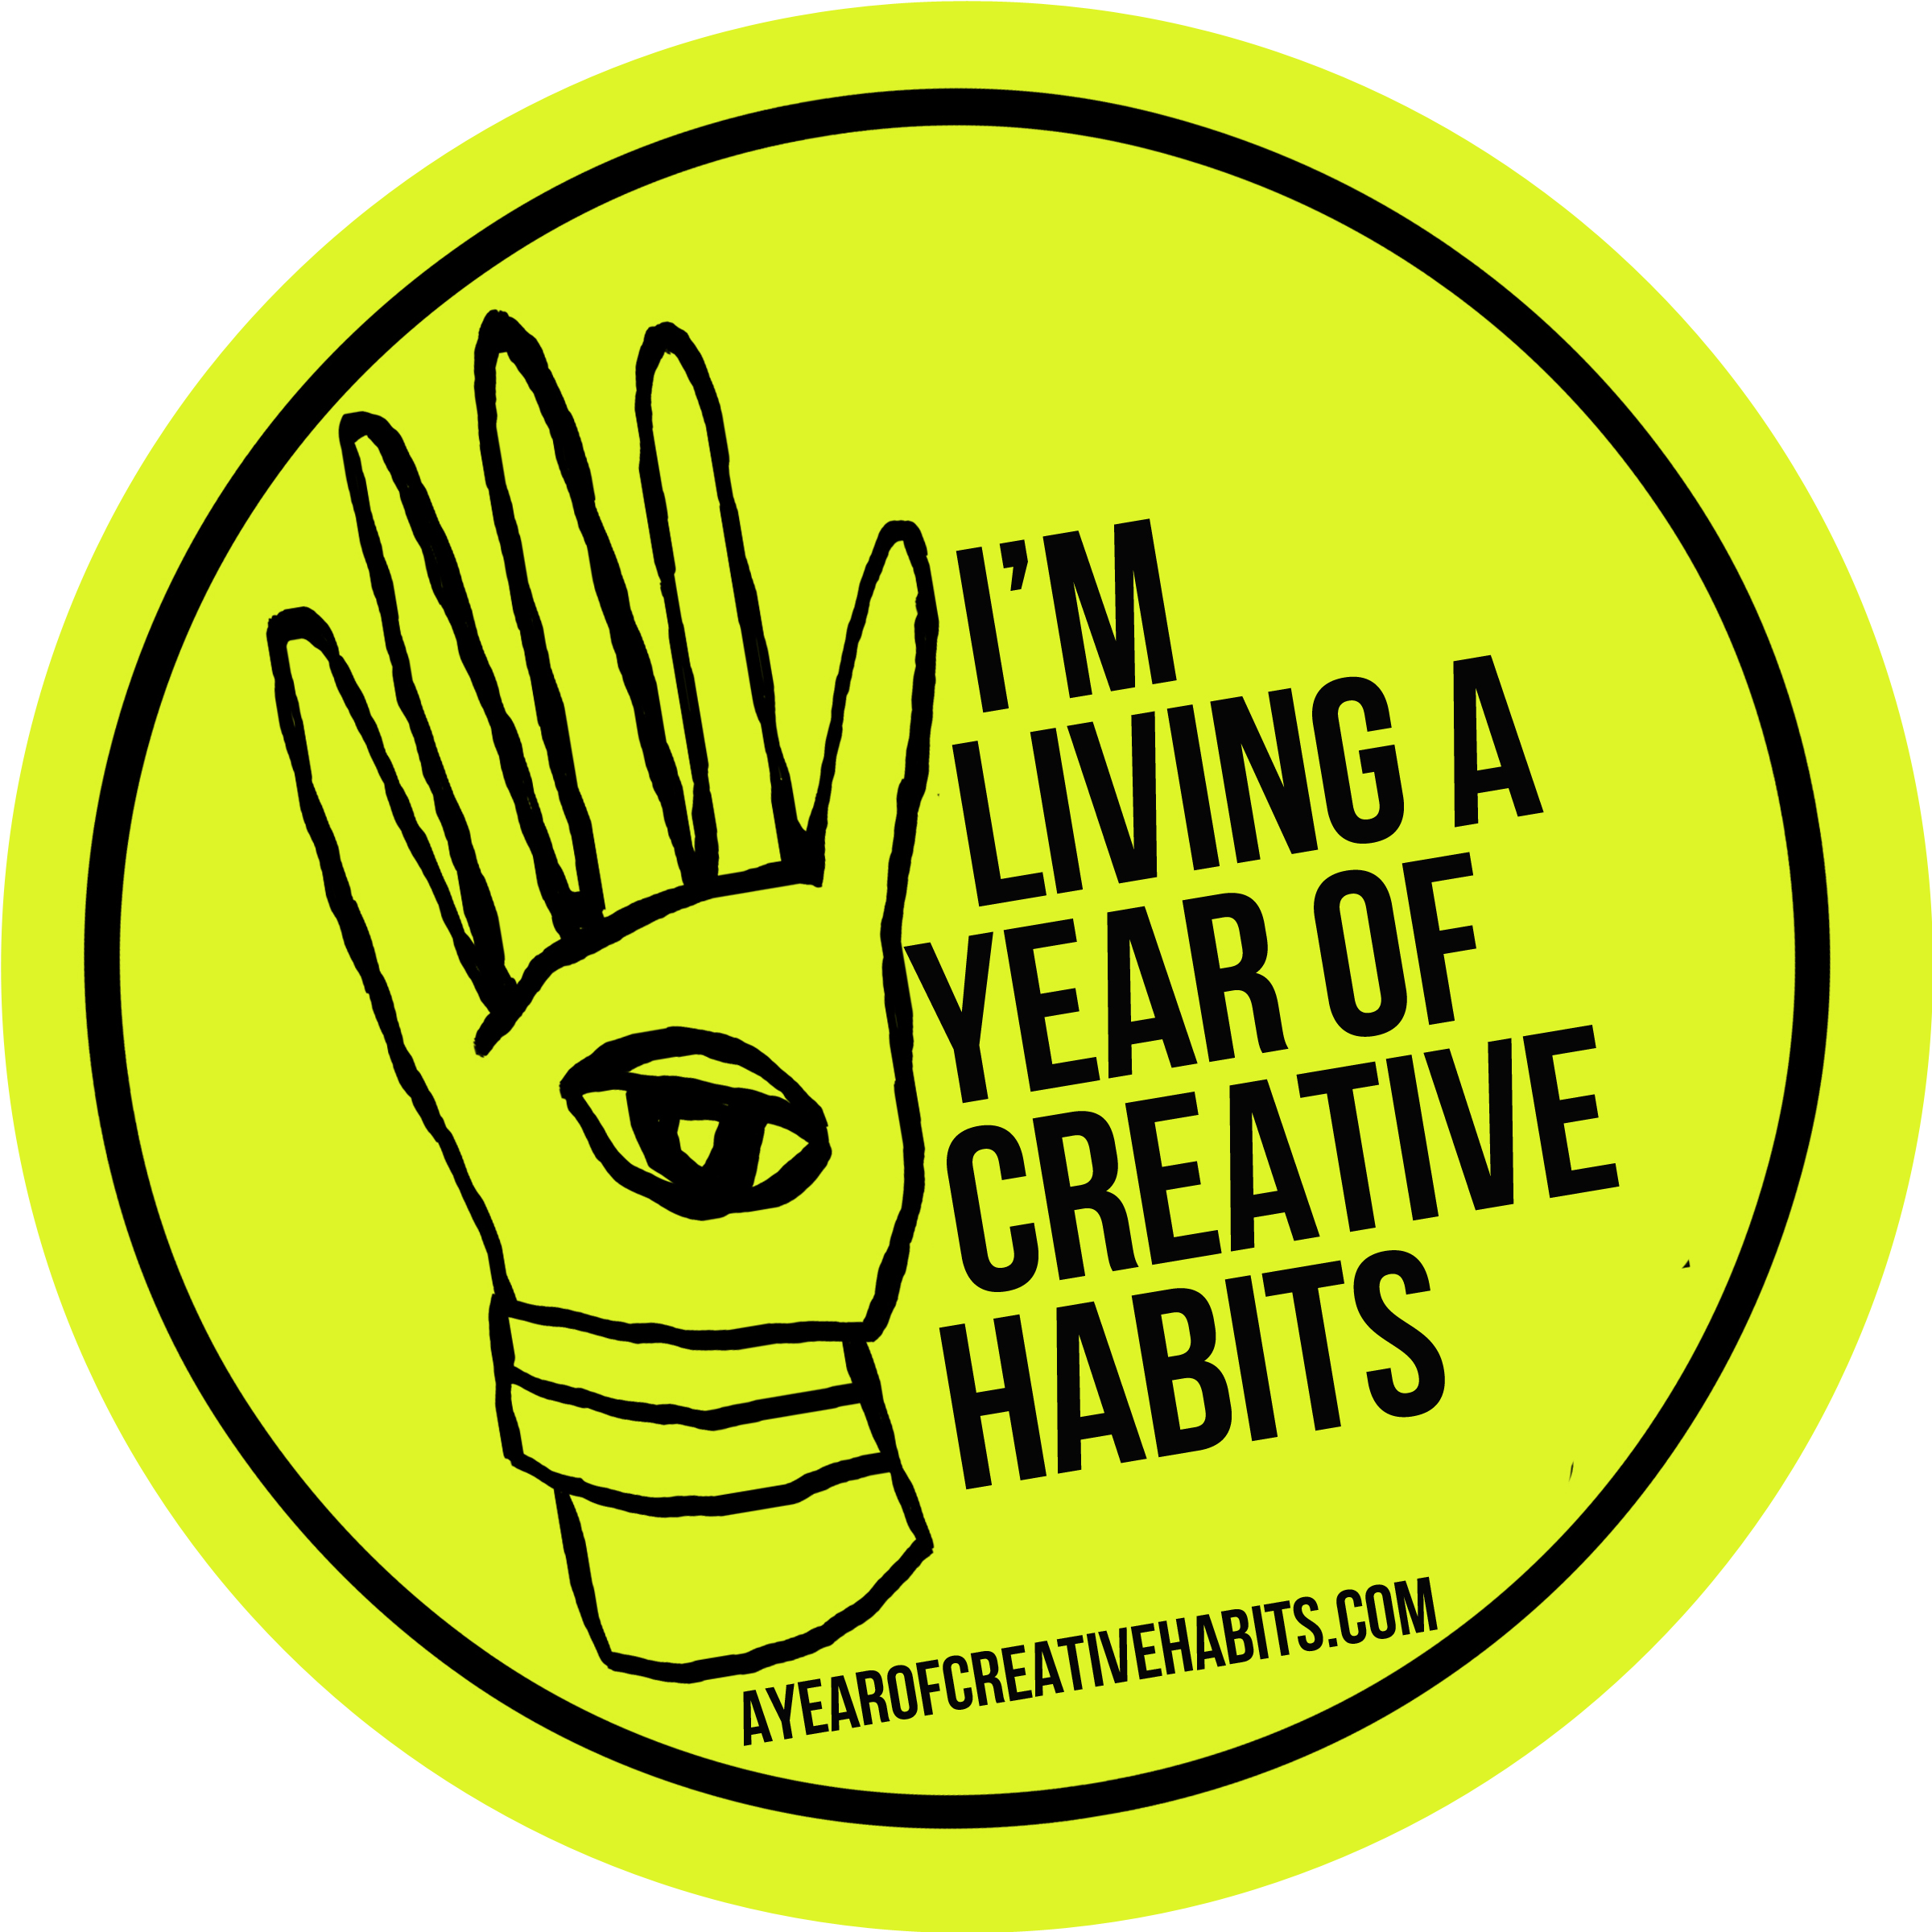 I'm living a year of creative habits